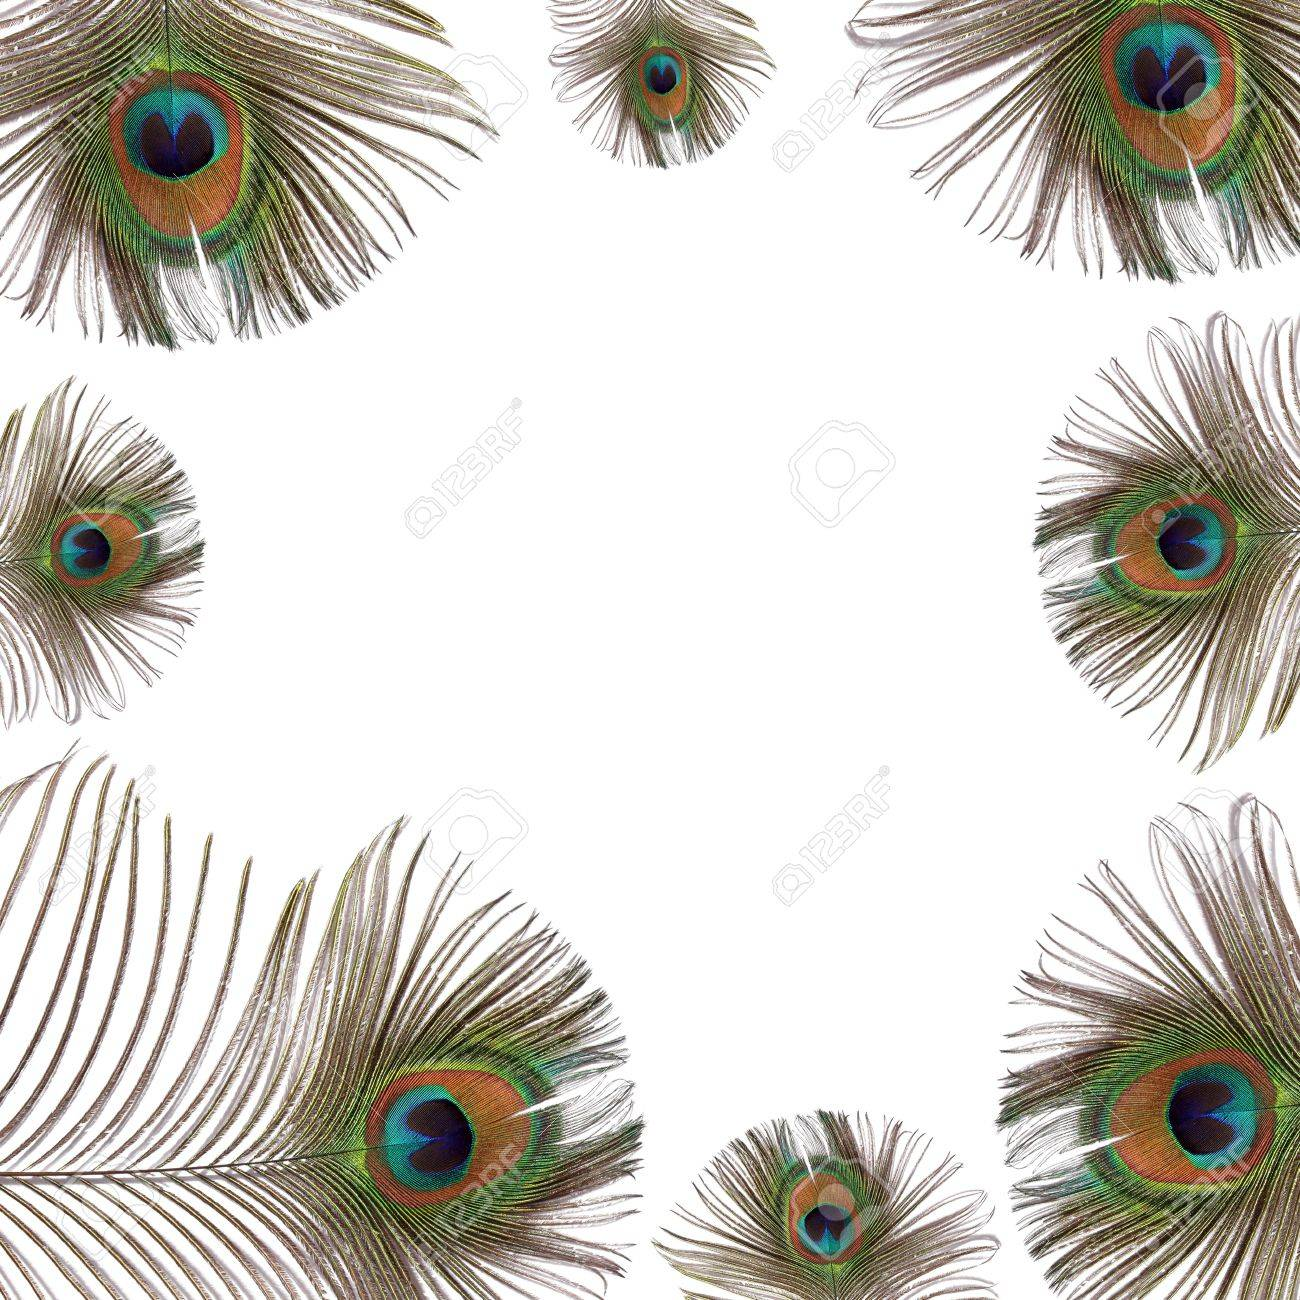 iridescent eyes of peacock feathers creating a frame over white background stock photo